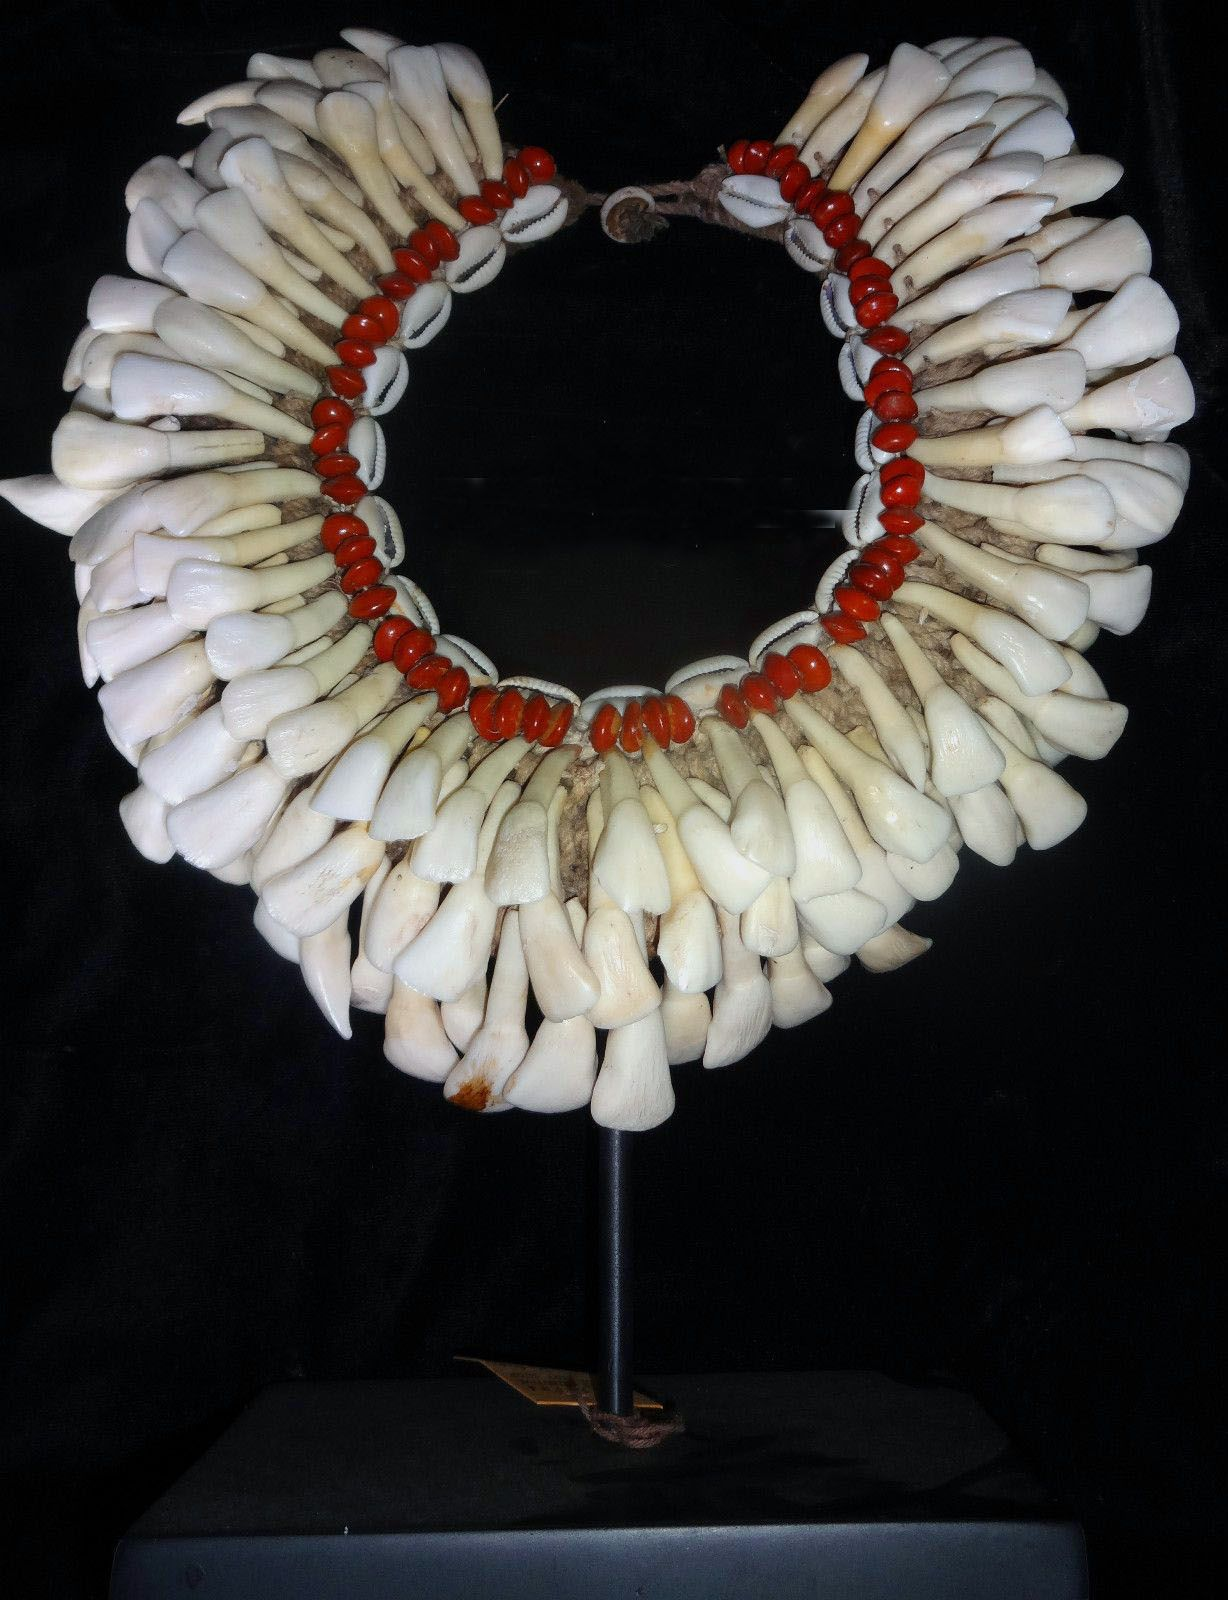 Papua New Guinea | Antique necklace; buffalo teeth, shells, seeds and fiber | Price on request